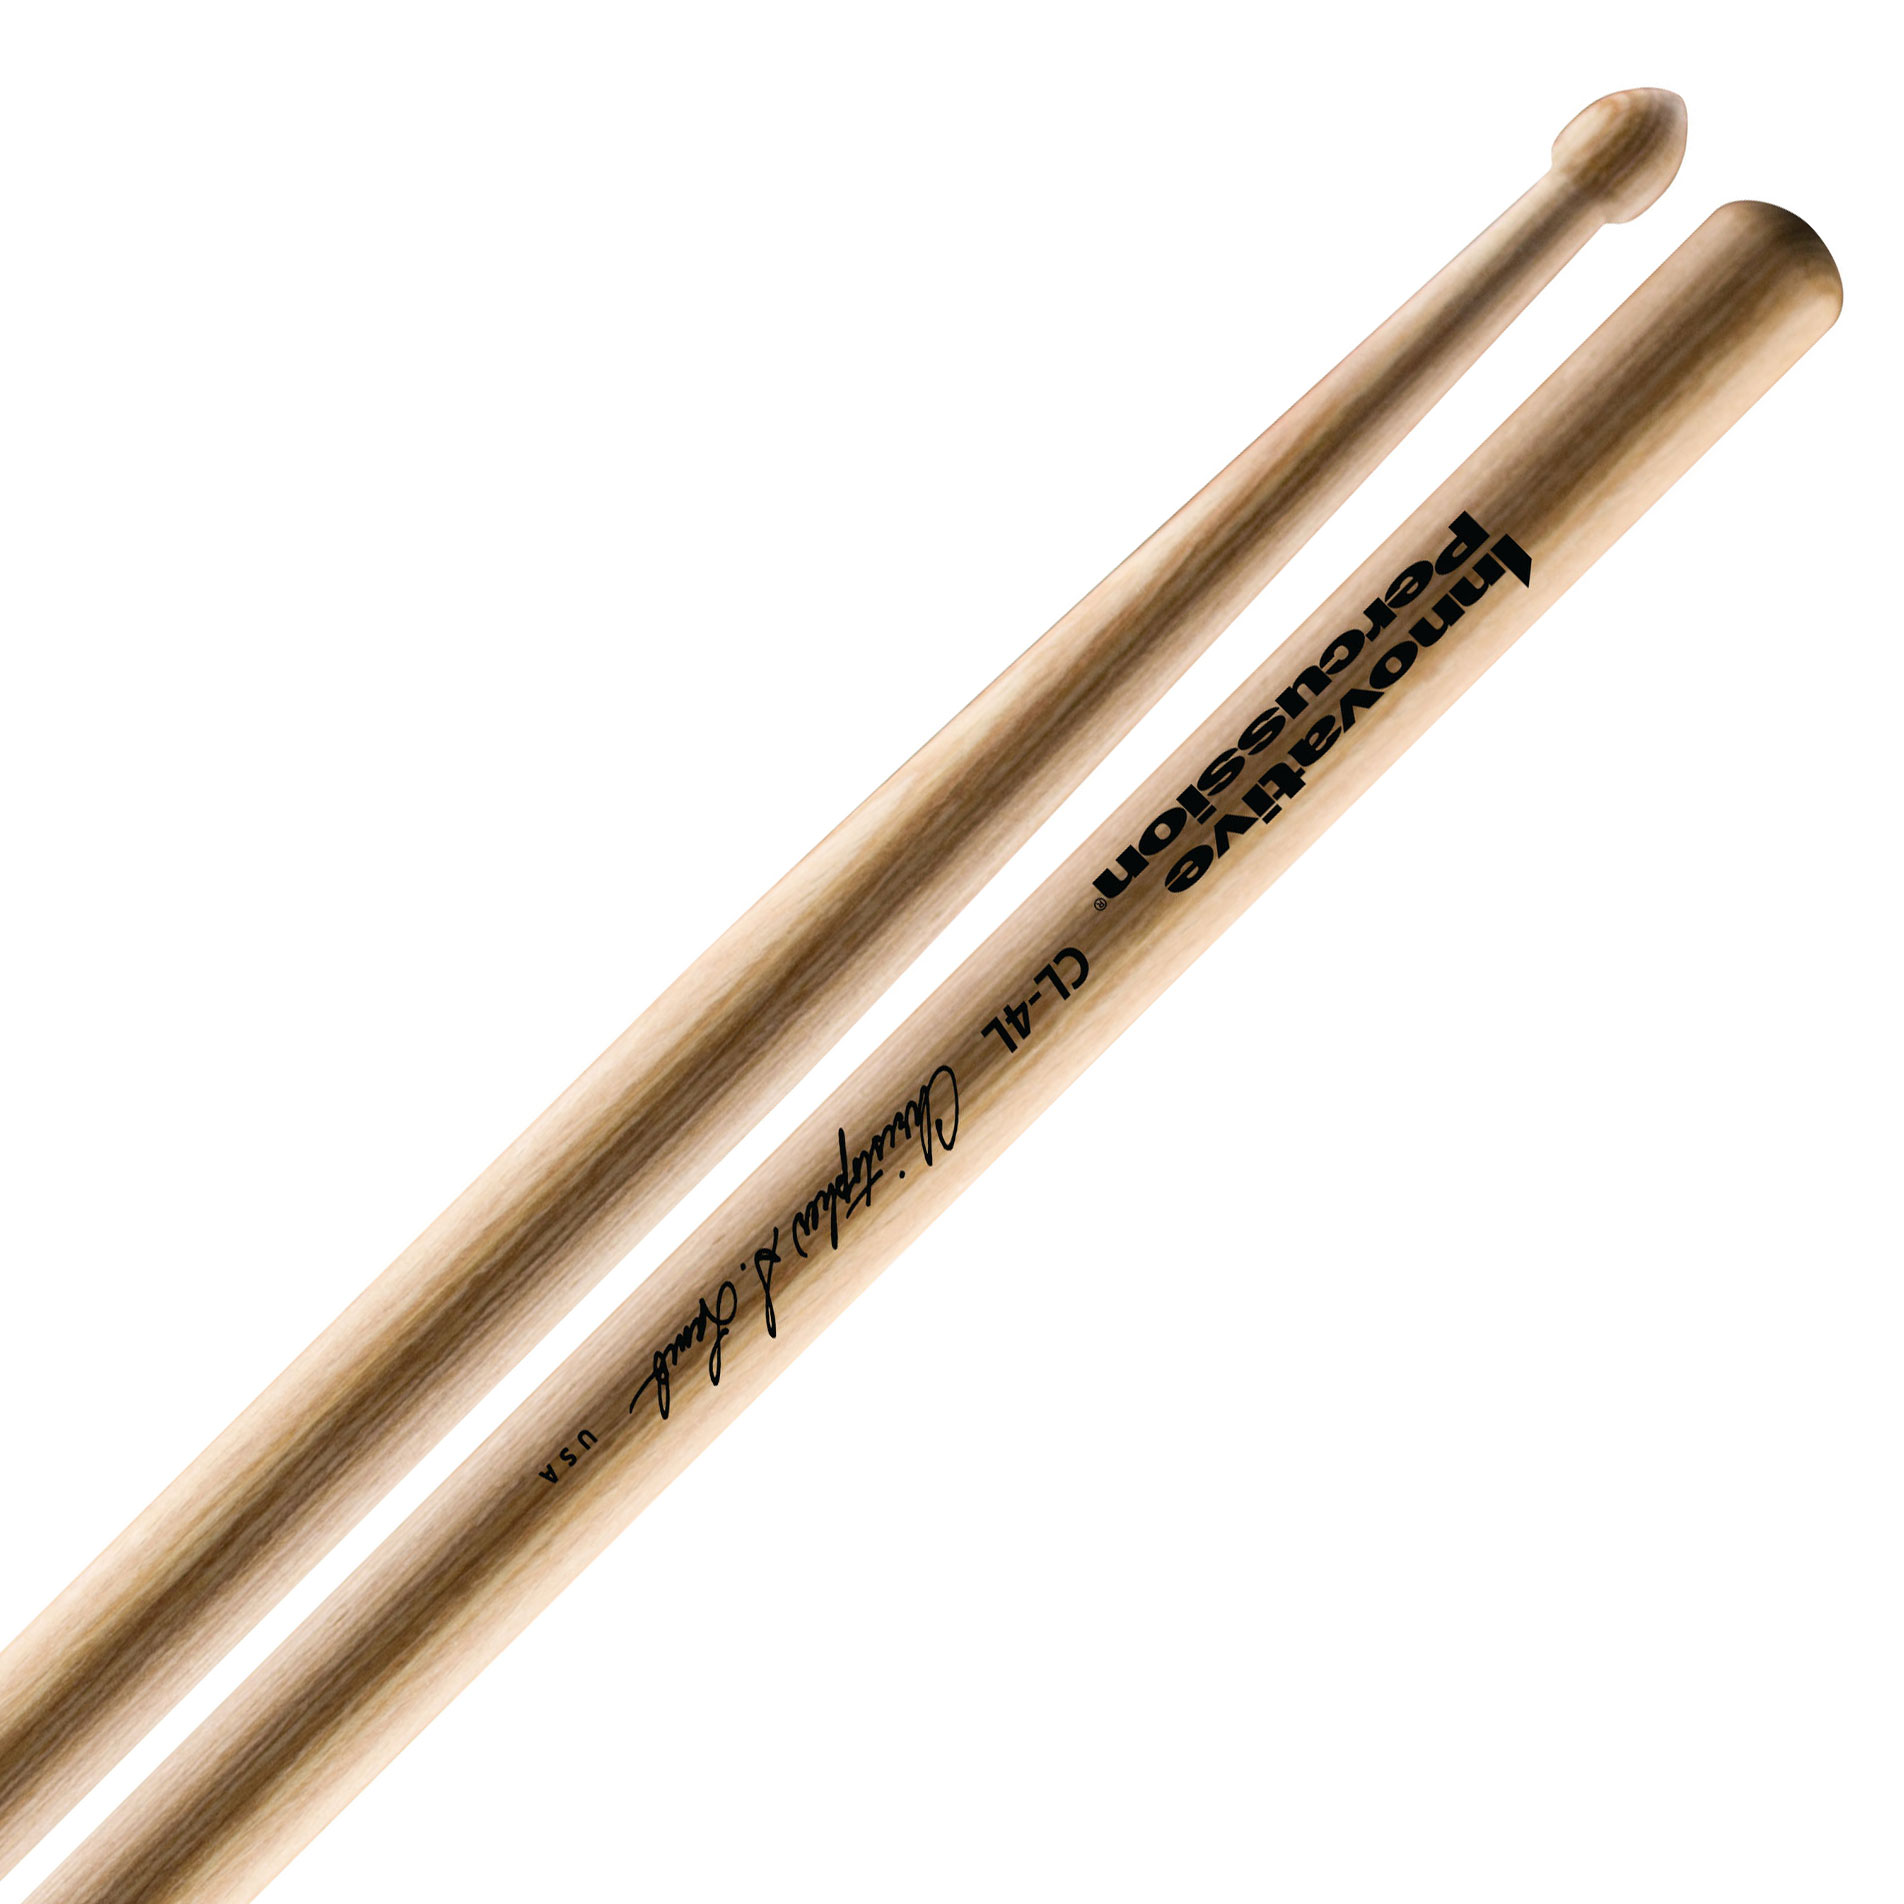 Innovative Percussion Christopher Lamb #4 Laminated Beech Signature Concert Snare Sticks